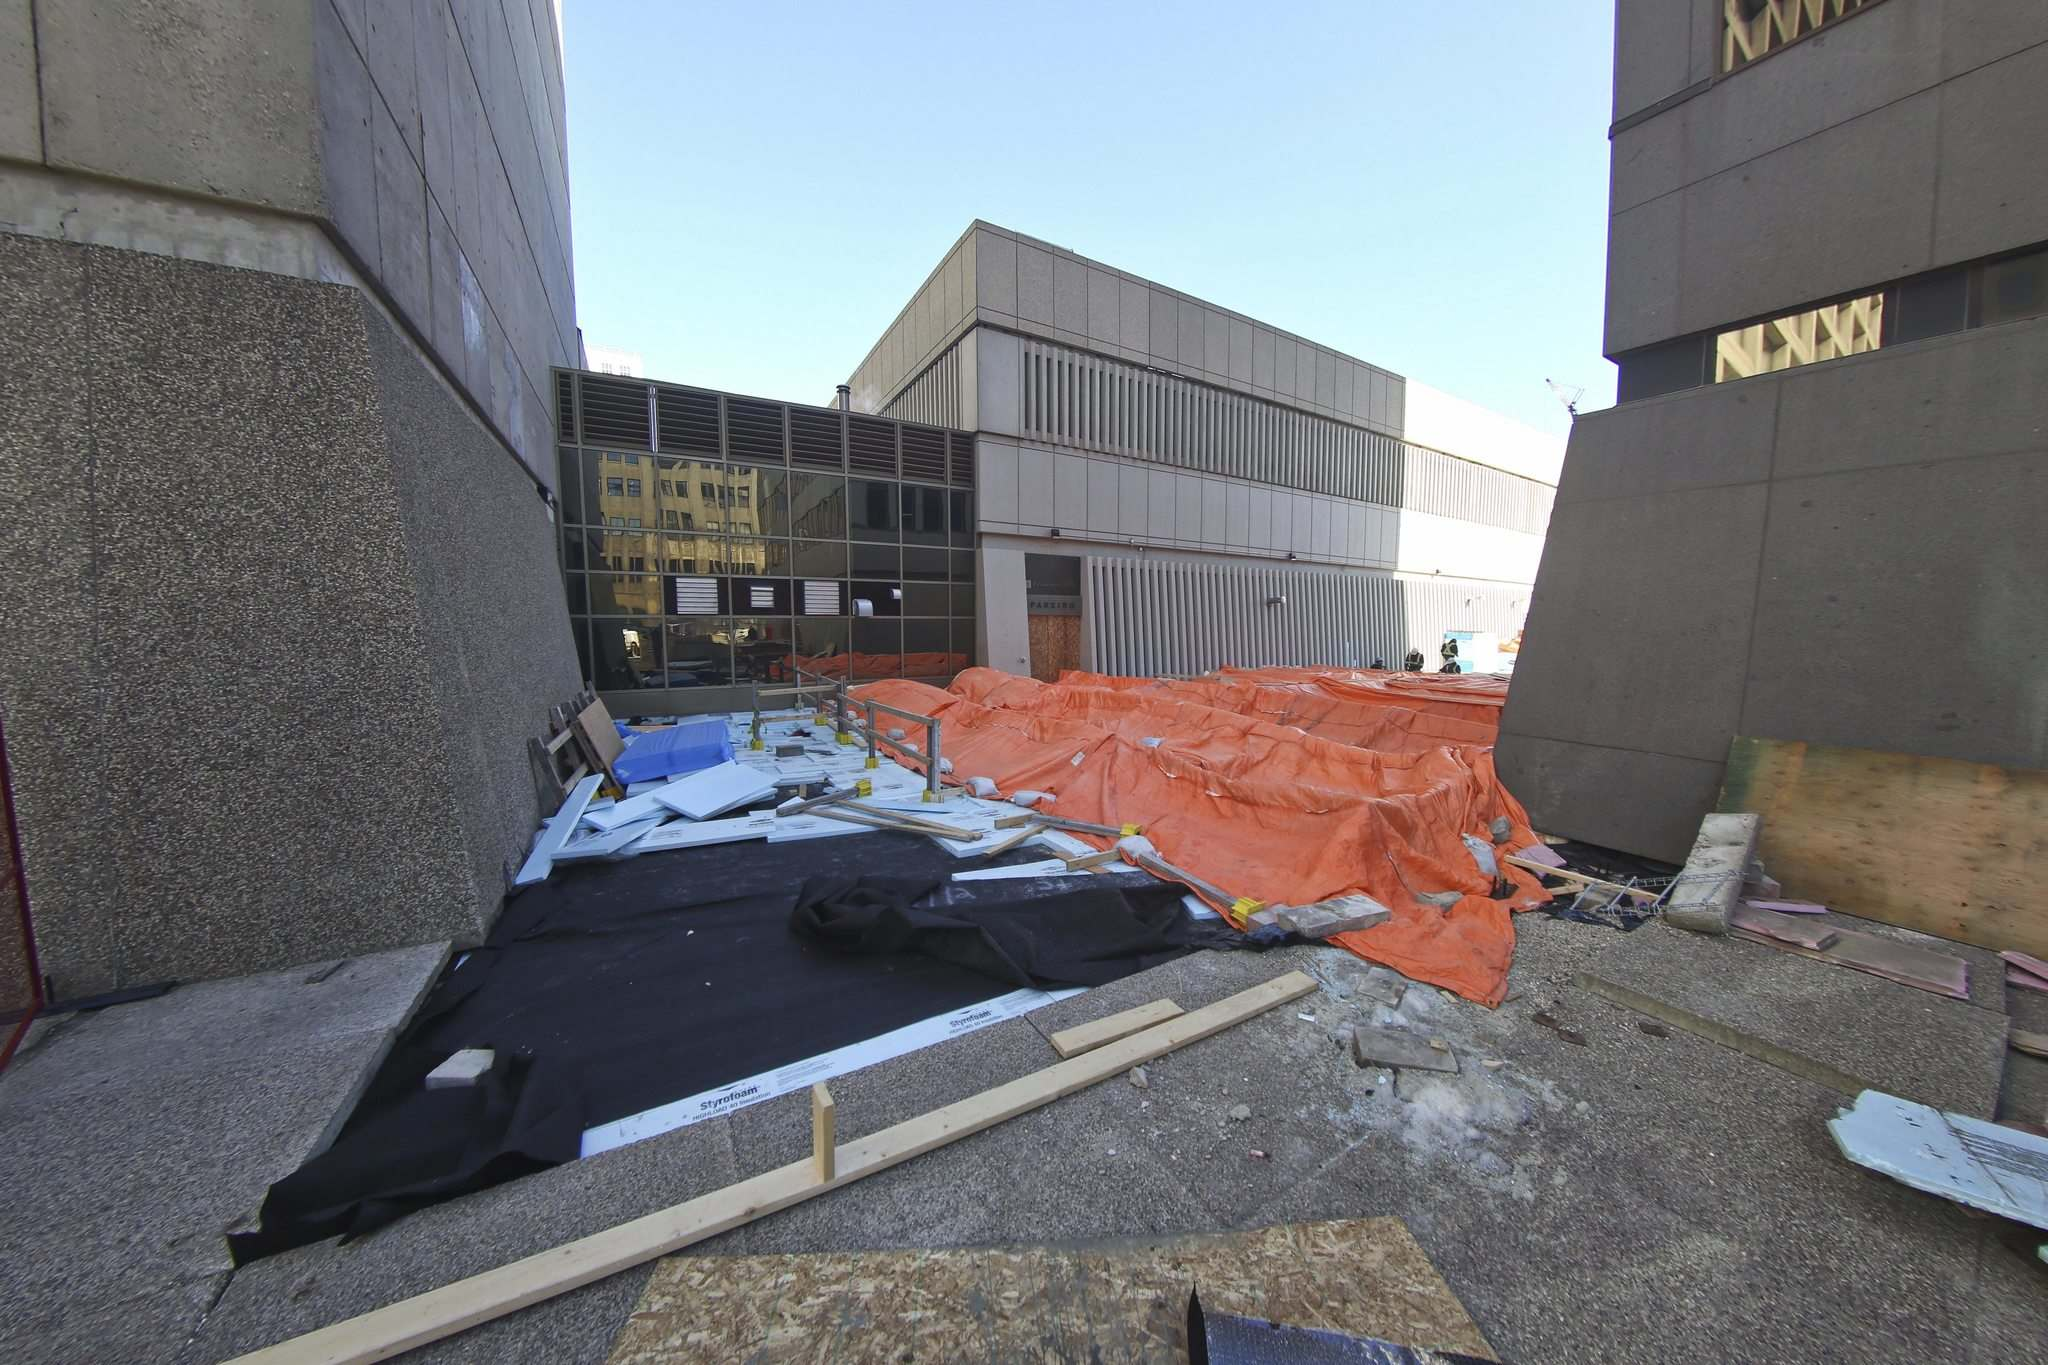 Preliminary engineering studies conducted by the owners of two properties at Portage and Main show conclusively that damage to the membrane is far more significant than first thought.